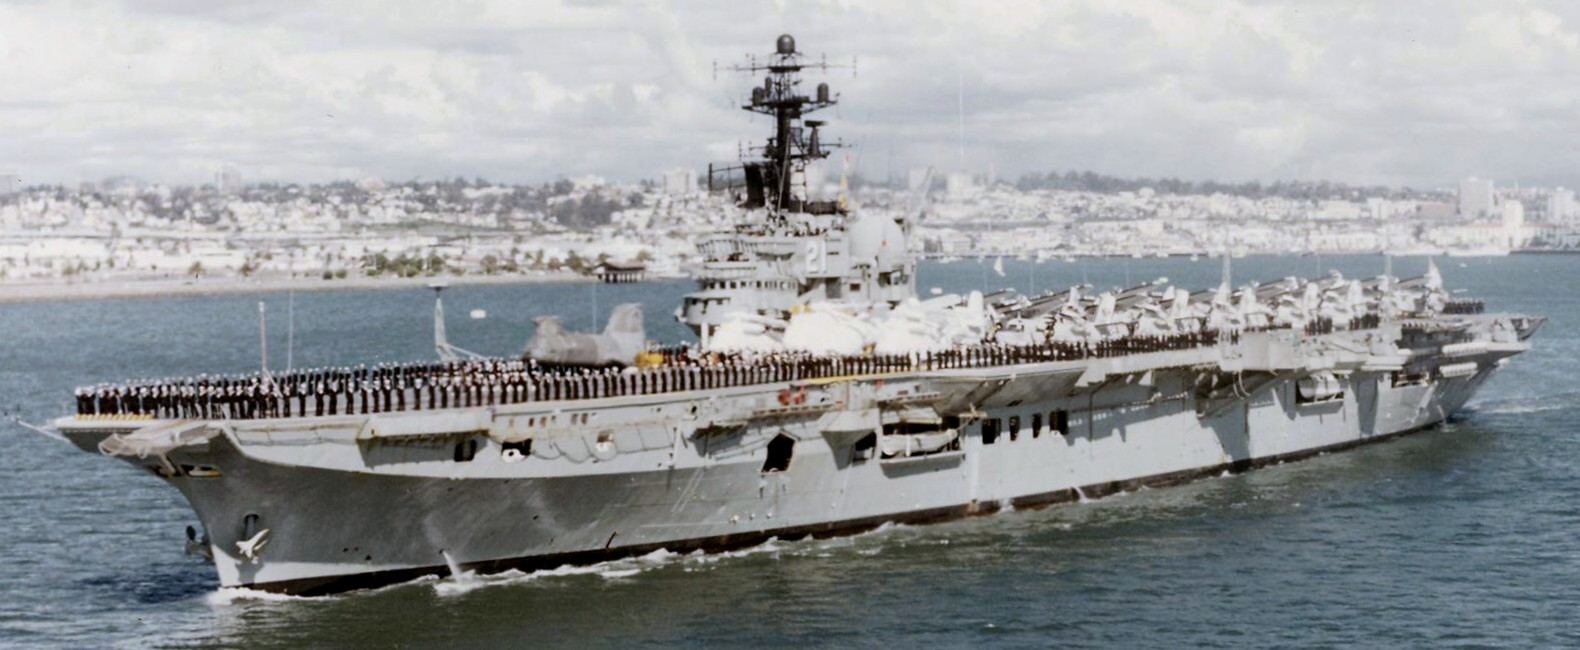 Majestic class Aircraft Carrier - Royal Navy